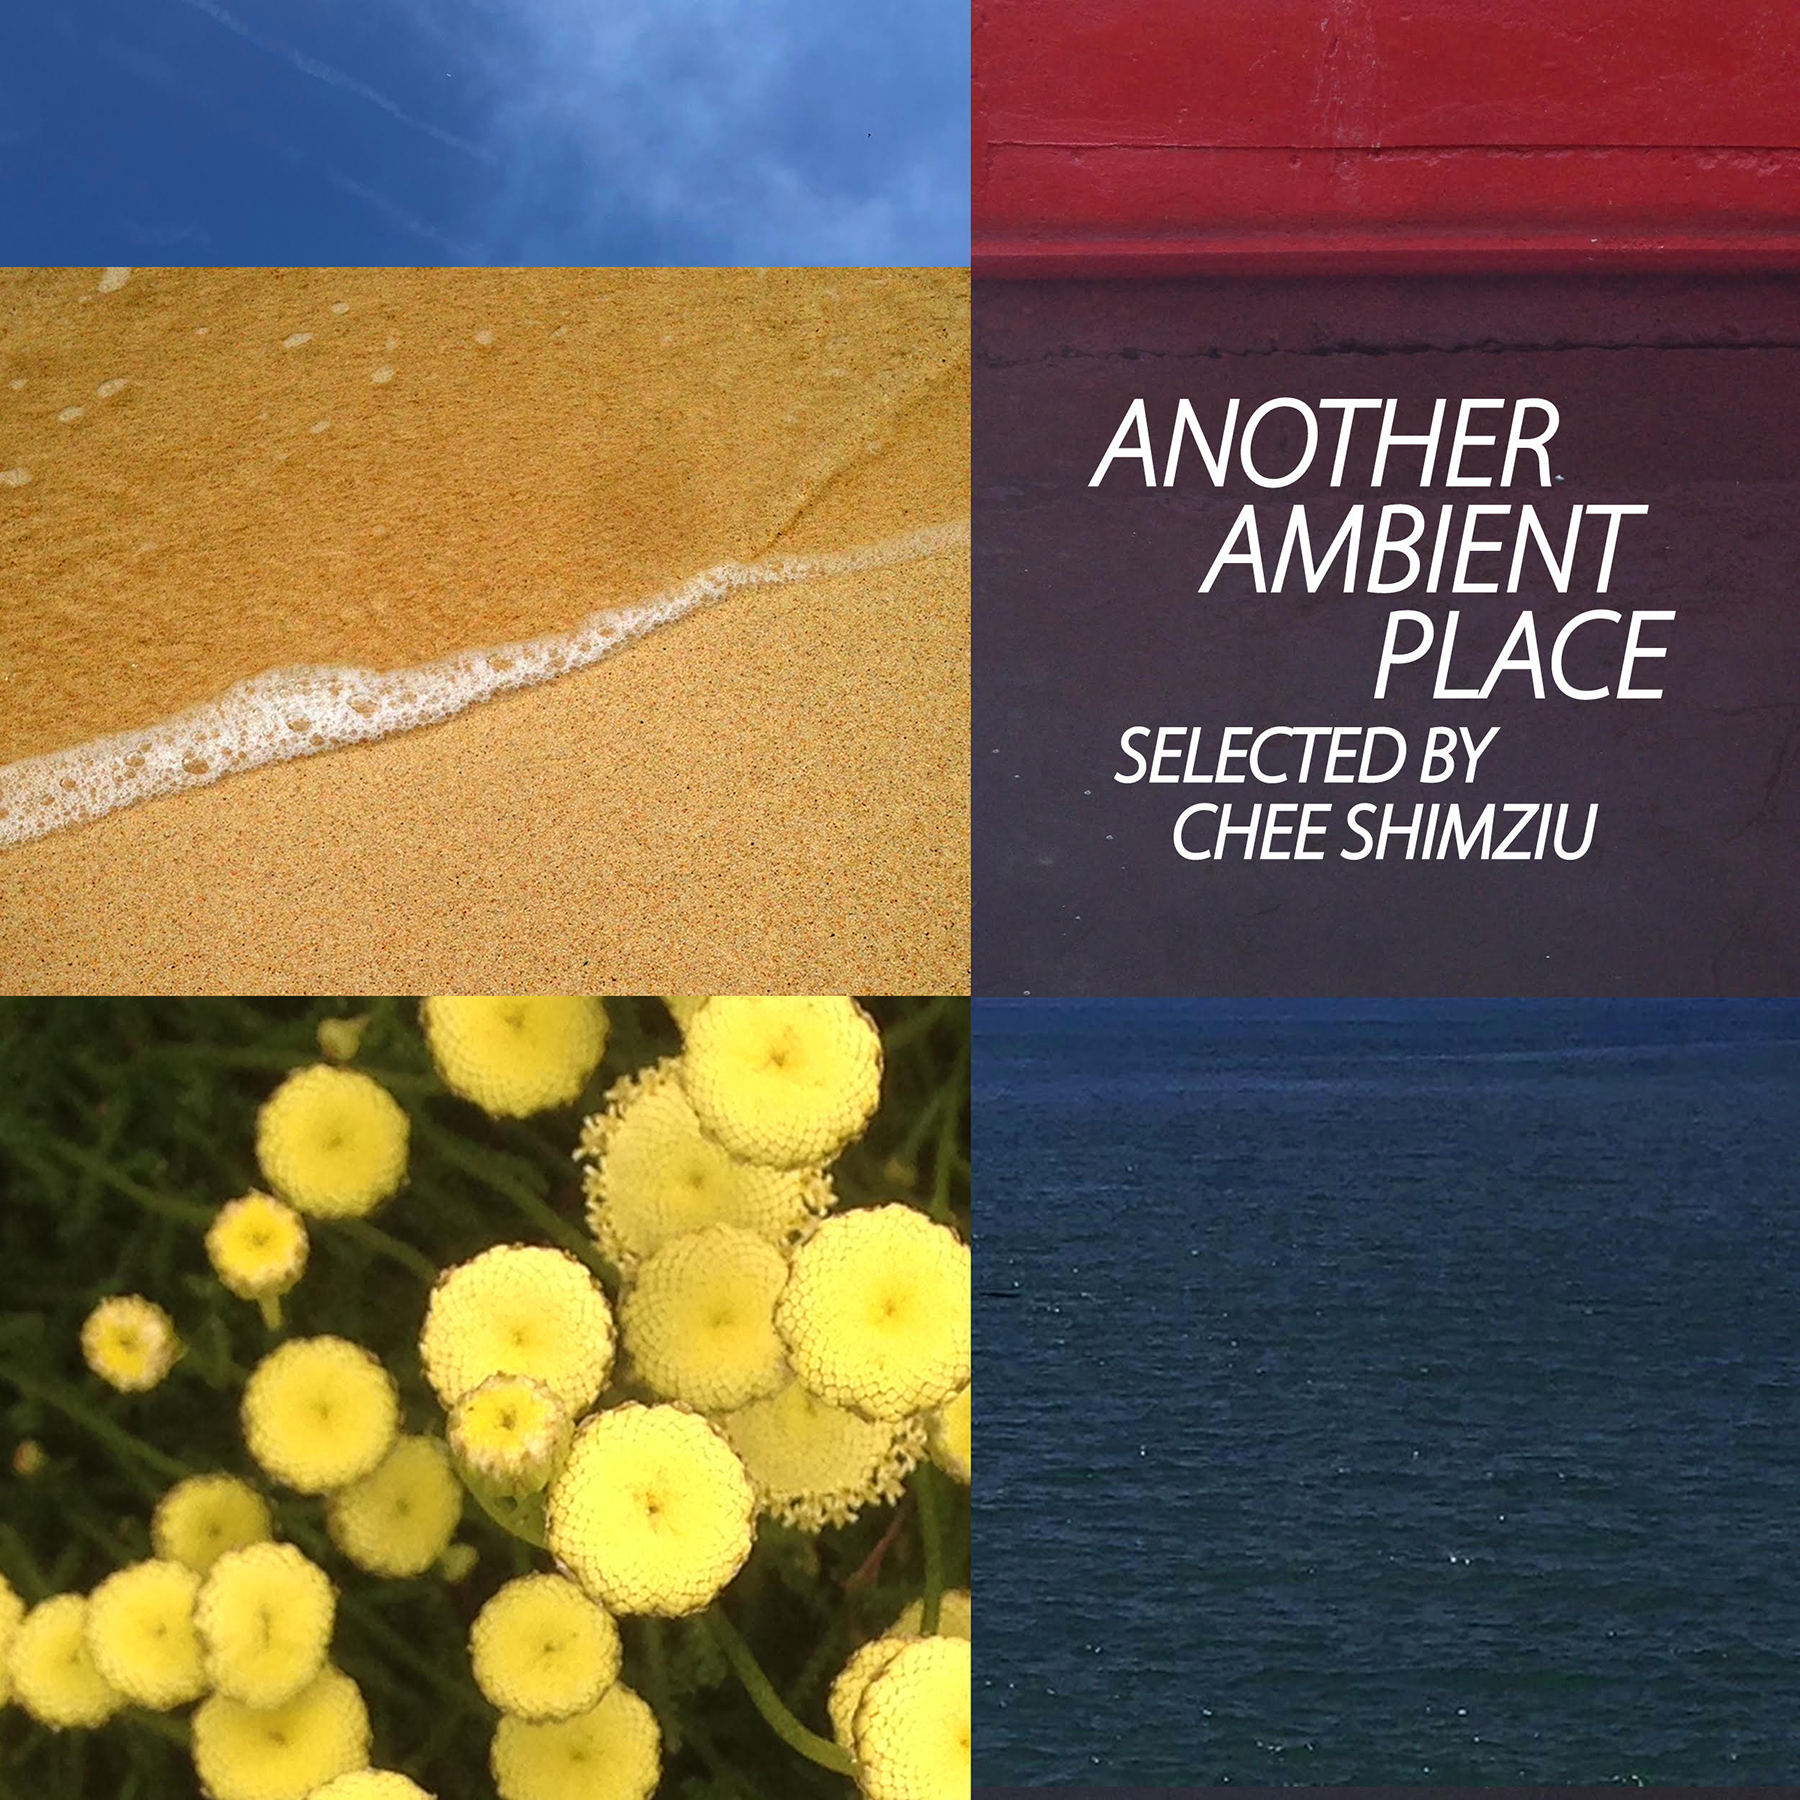 J-DIGS: Another Ambient Place : selected by Chee Shimizu